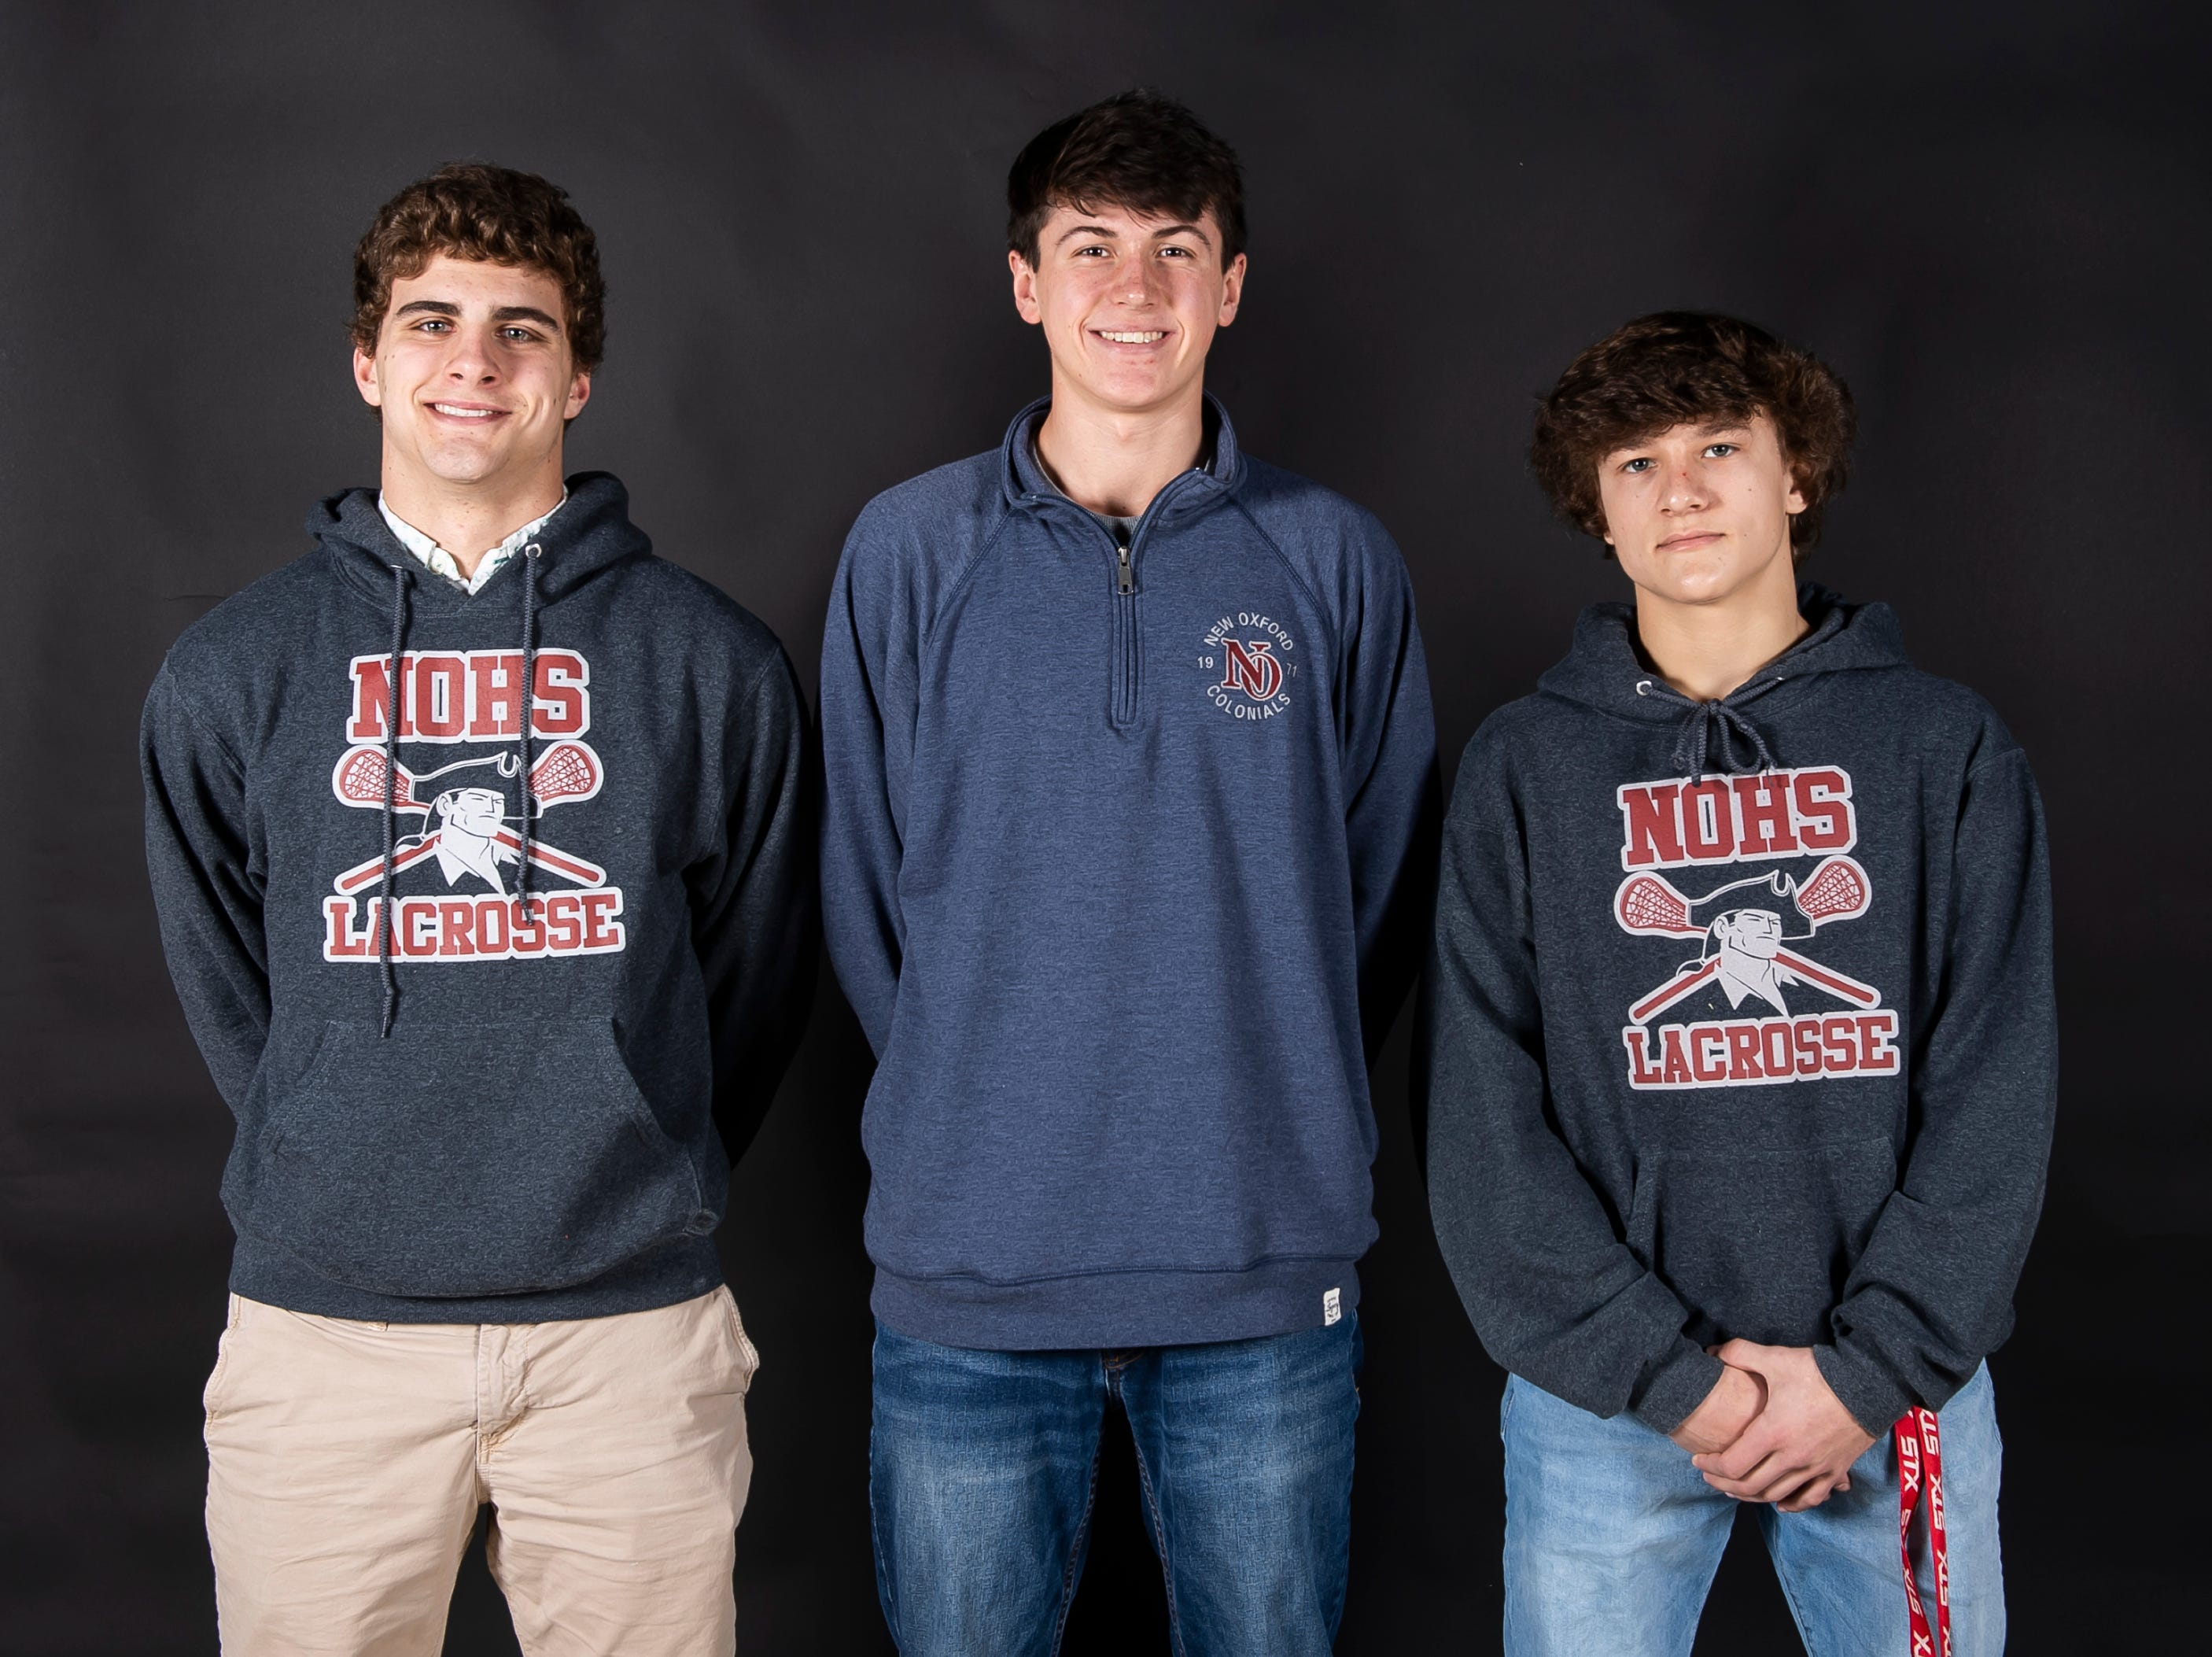 (From left) New Oxford lacrosse players Luke Laradello, Caleb Kelley and Lance Beckner pose in the GameTimePA photo booth during spring sports media day in York Sunday, March 10, 2019.